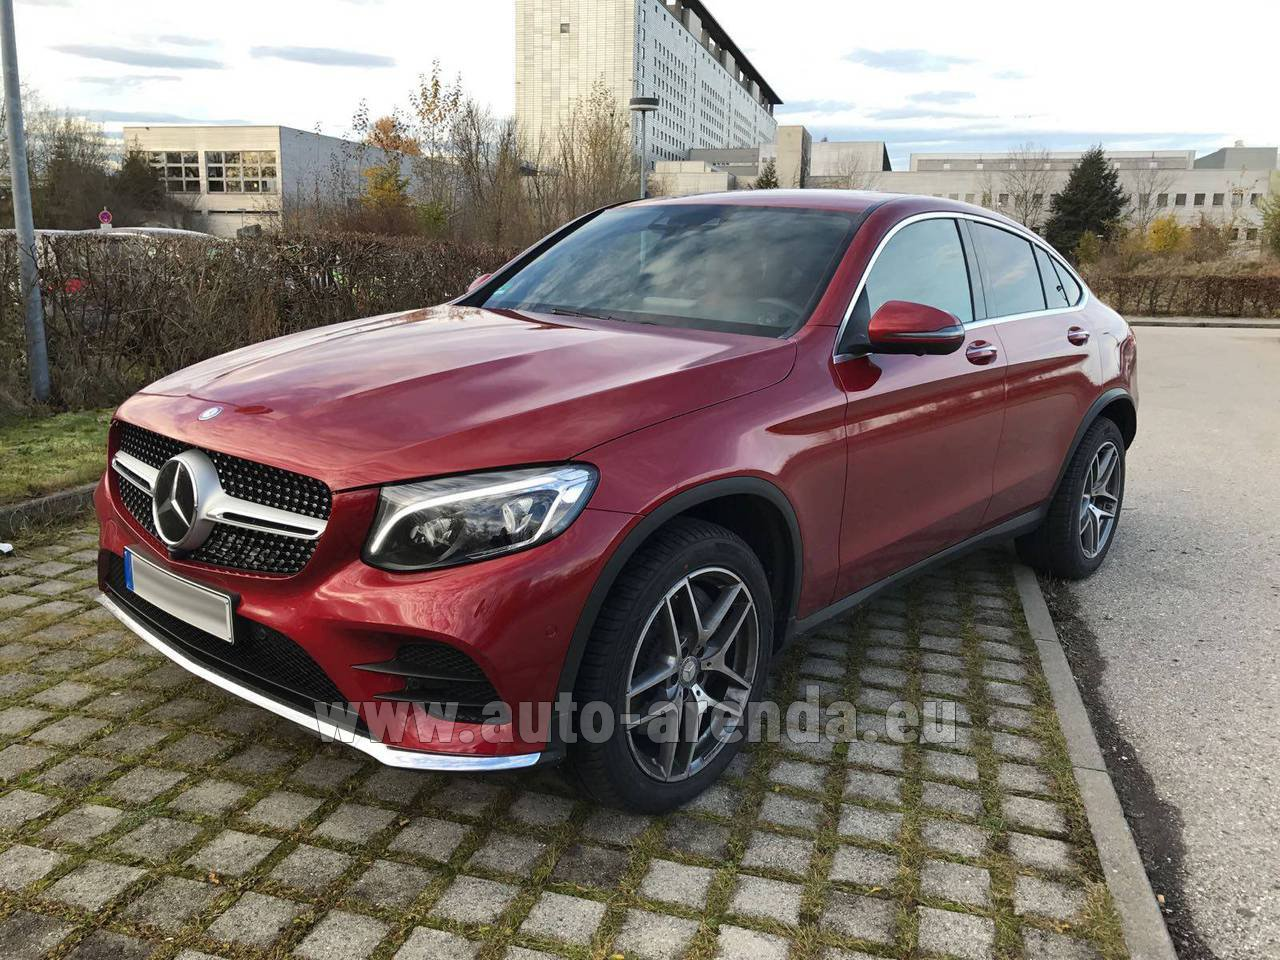 Rent the Mercedes-Benz GLC Coupe car in Monte Carlo